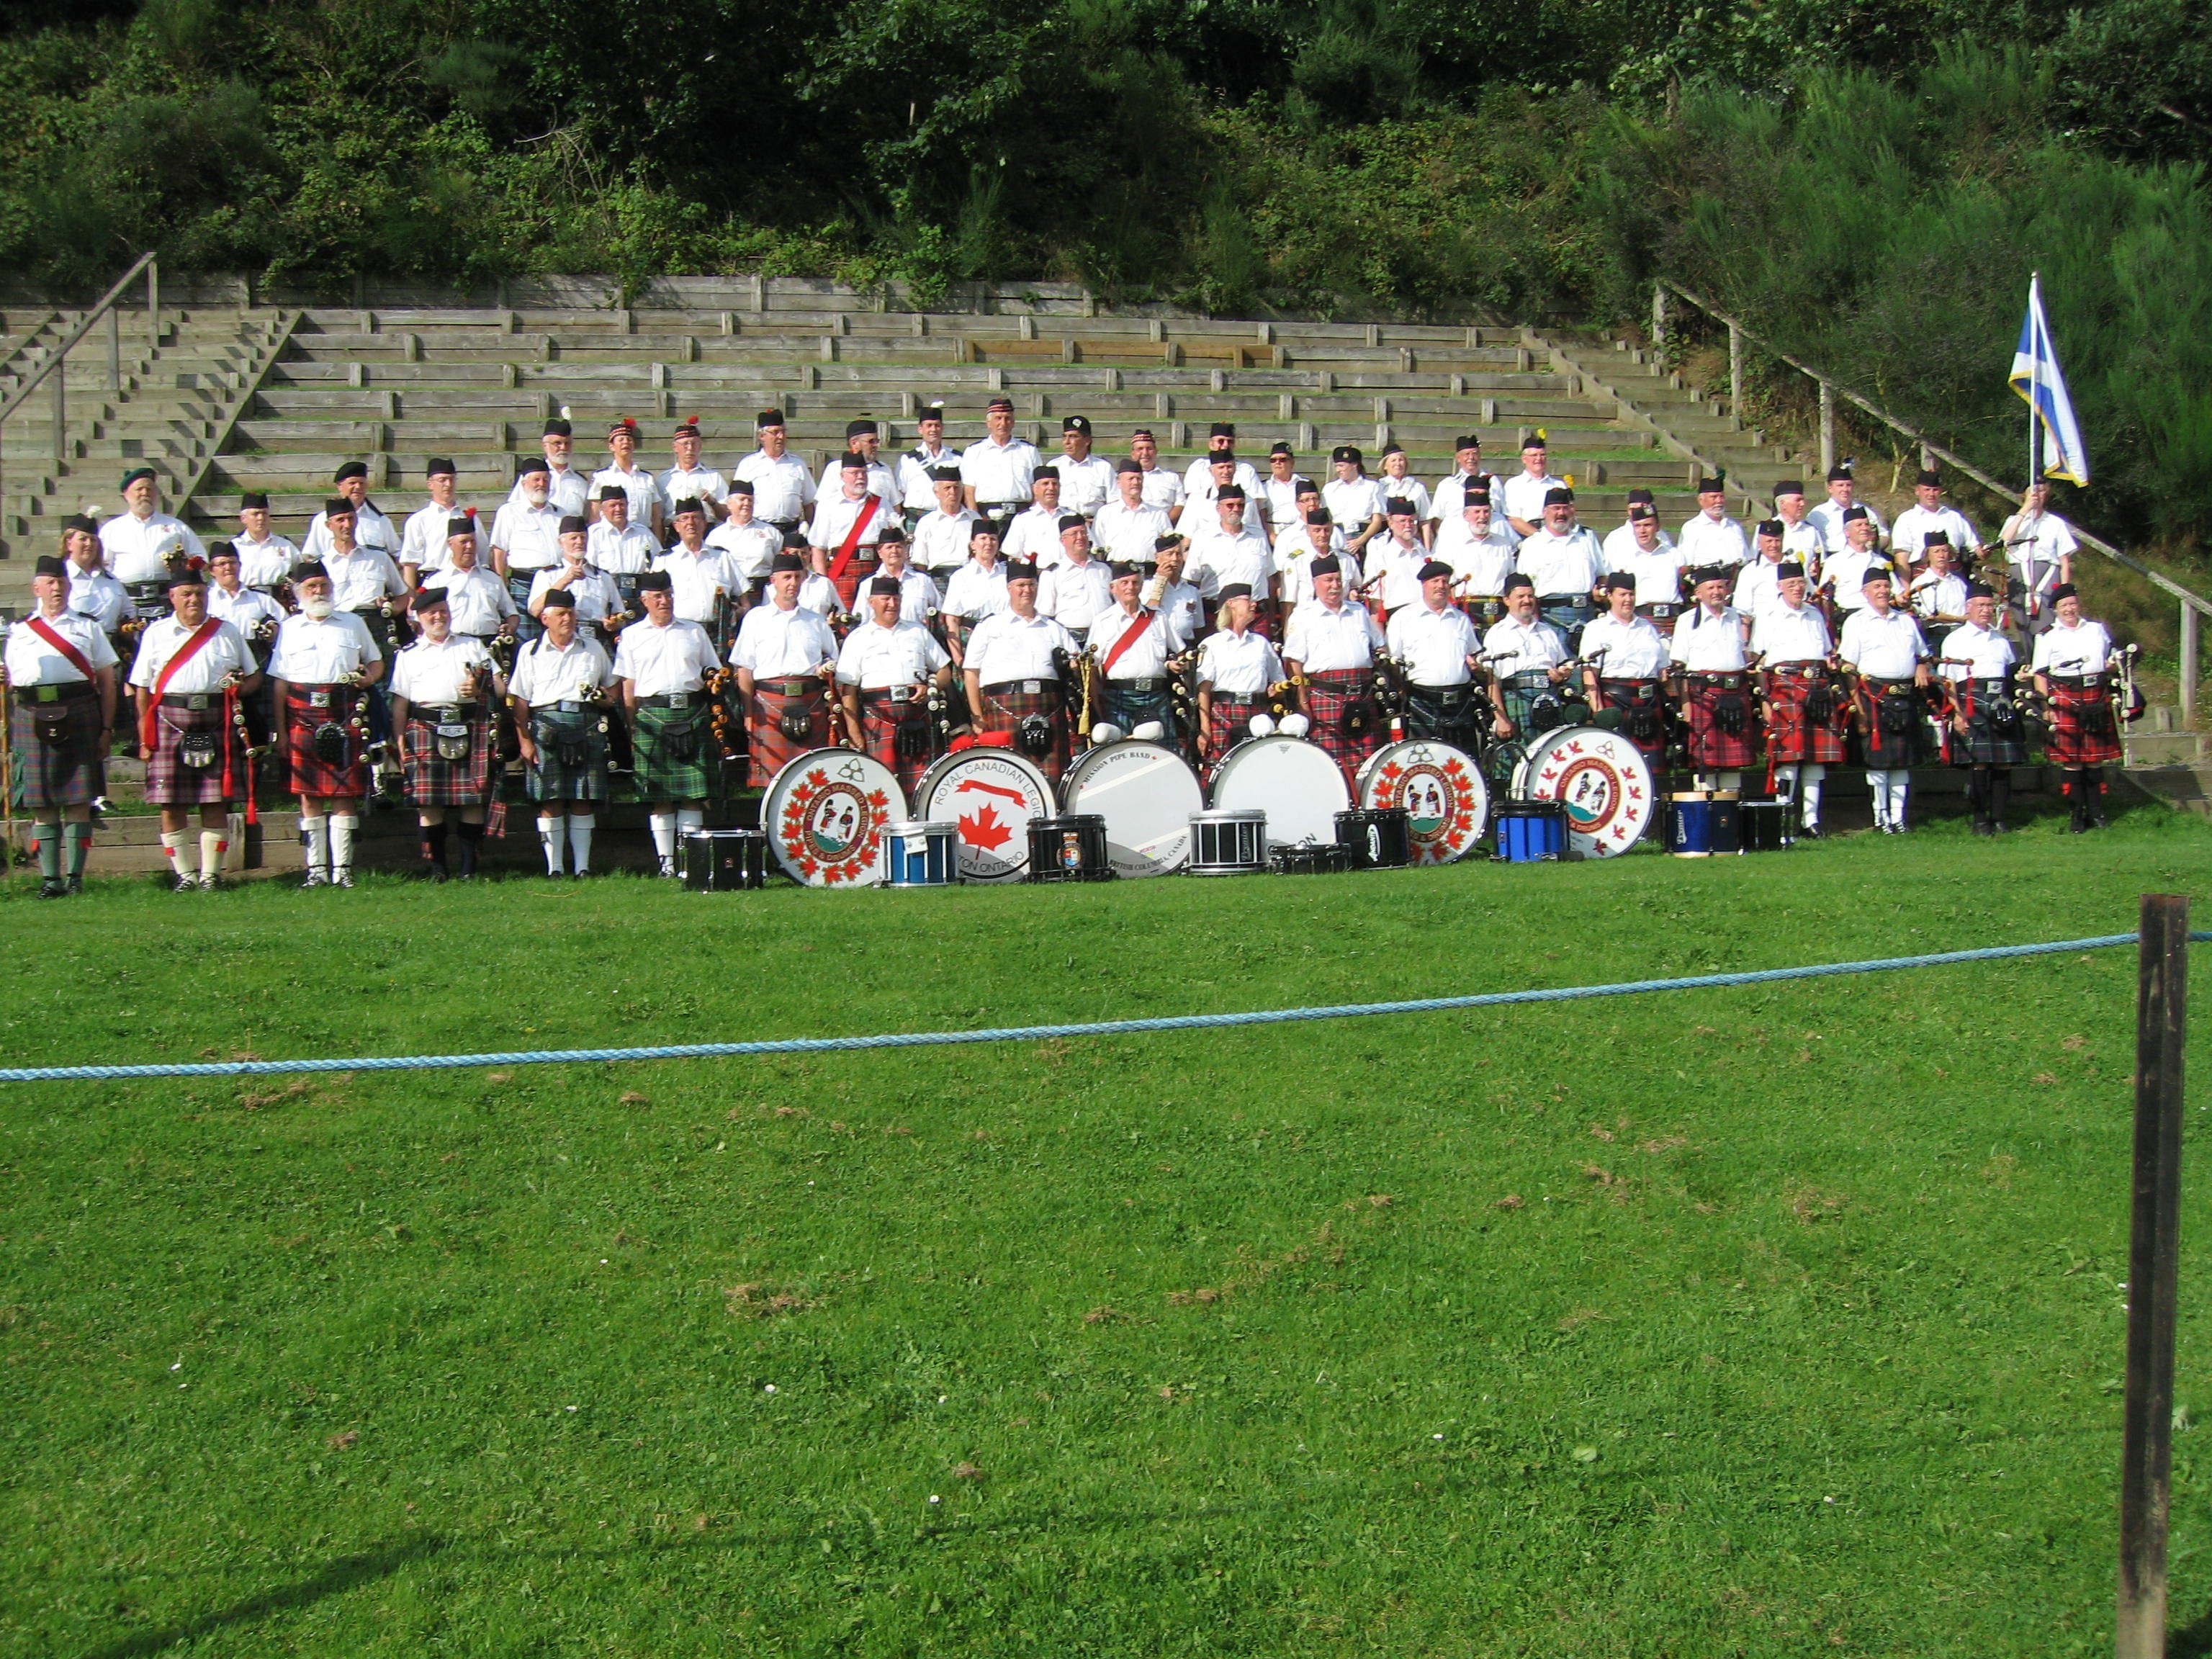 CANADIAN MASSED PIPE AND DRUM BAND